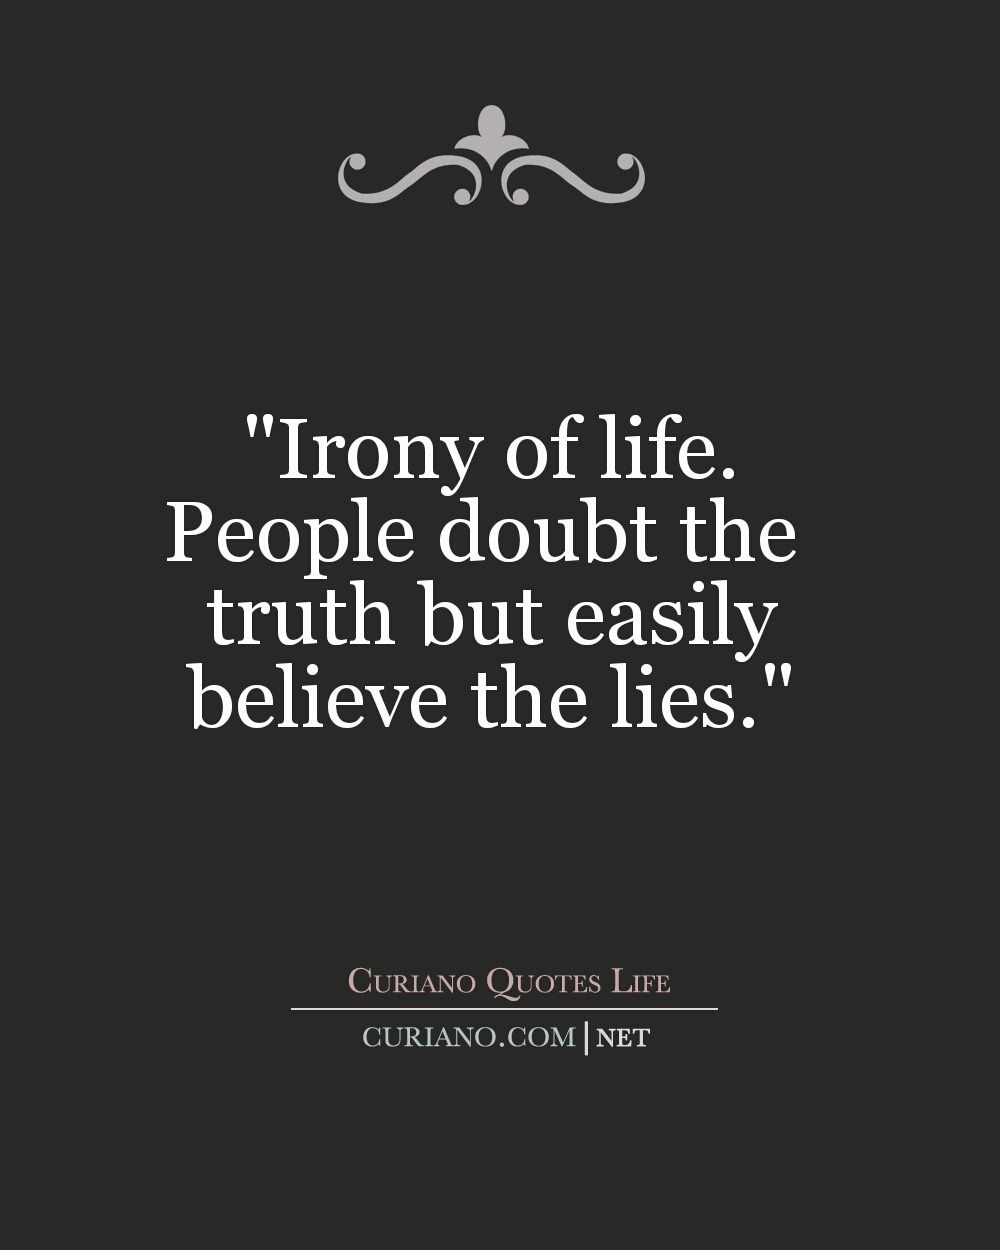 This blog Curiano Quotes Life shows Quotes Best Life Quote Life Quotes